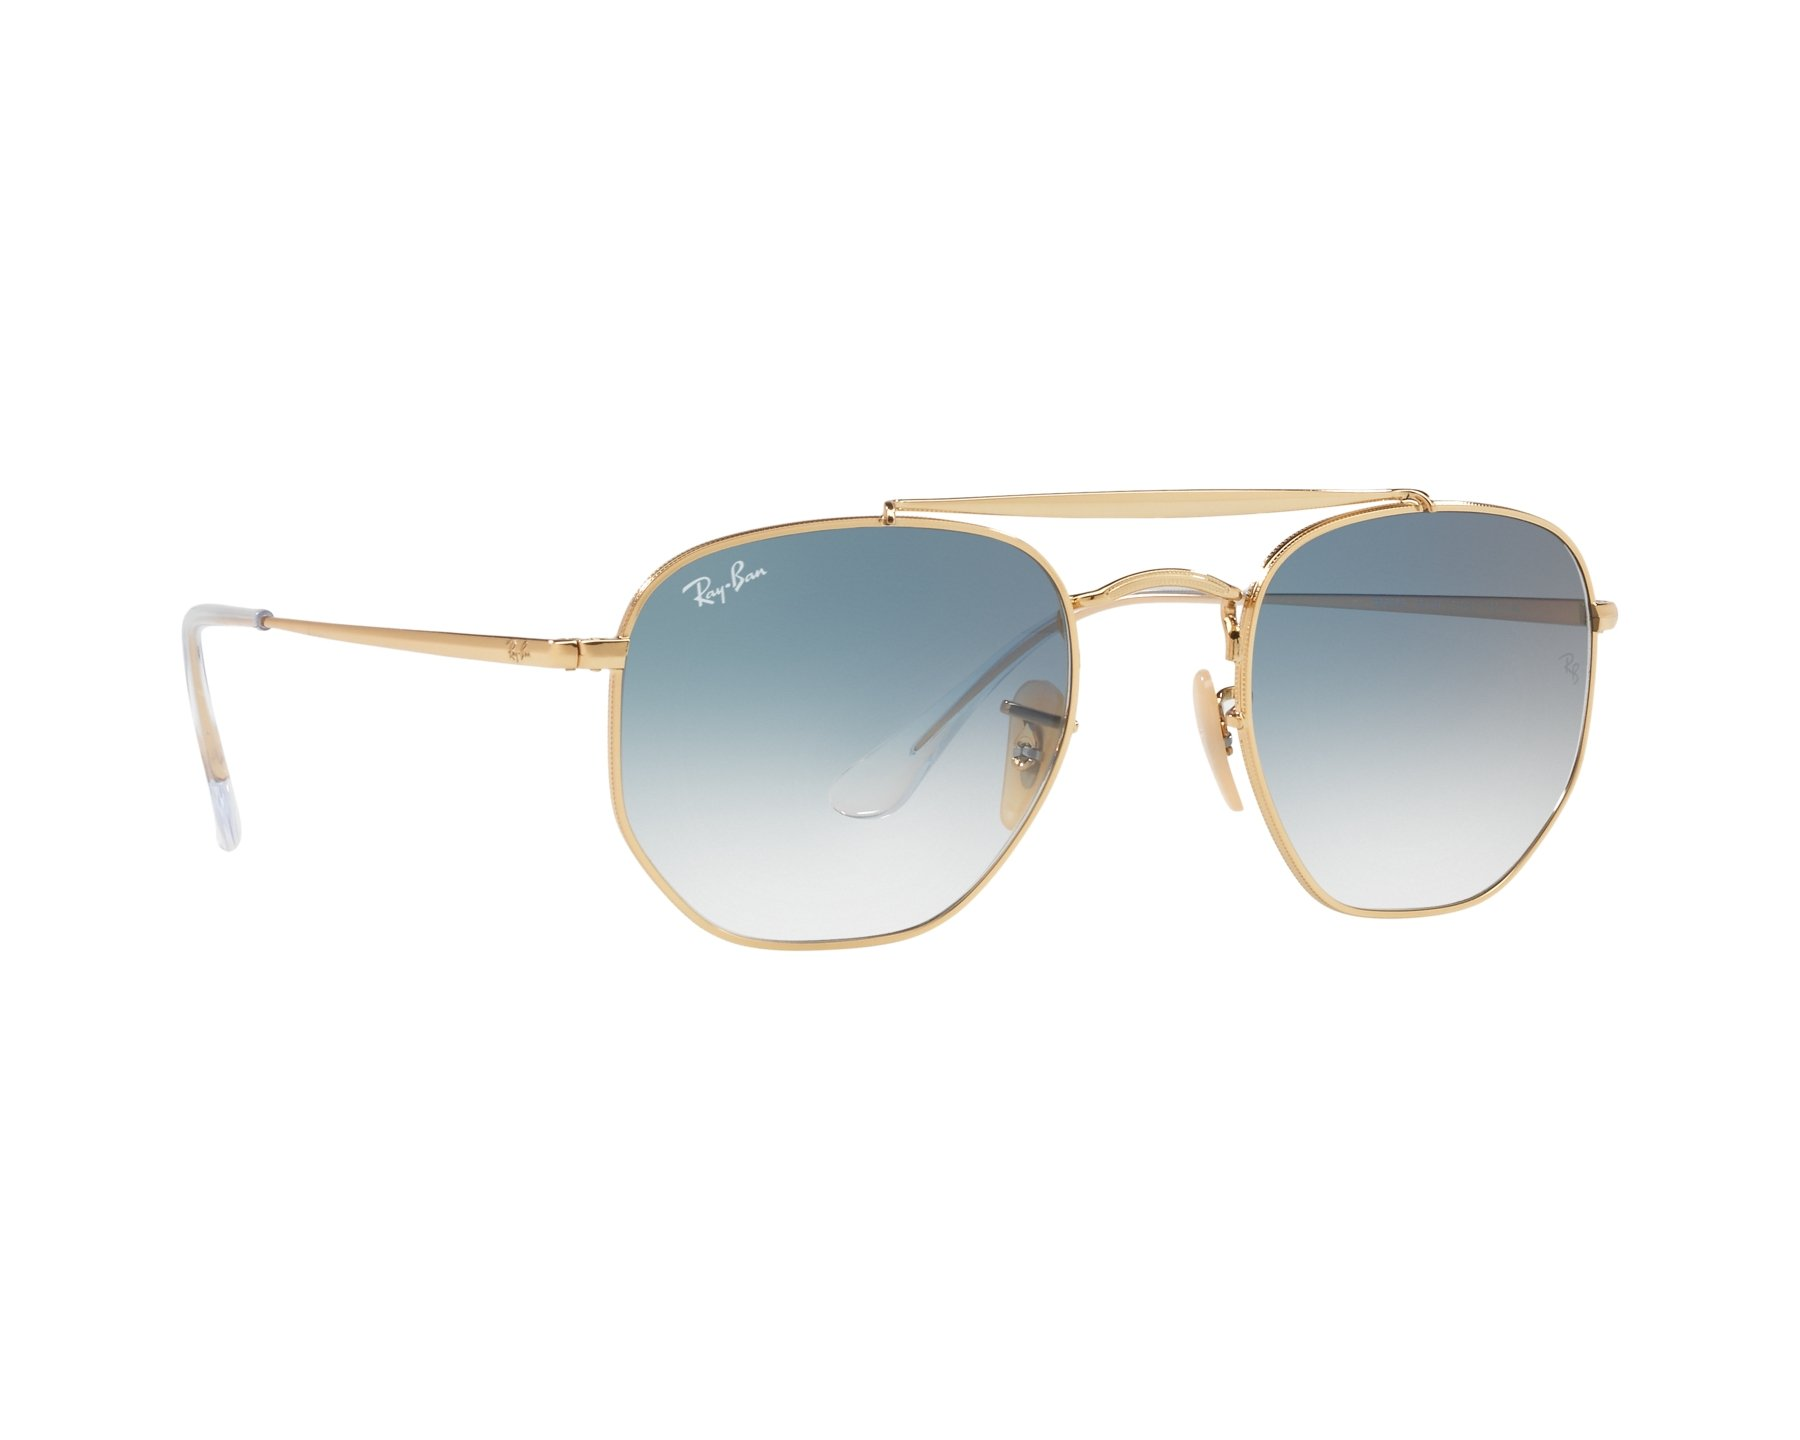 Lunettes de soleil Ray-Ban RB-3648 001 3F 54-21 Or 412adeb236c5